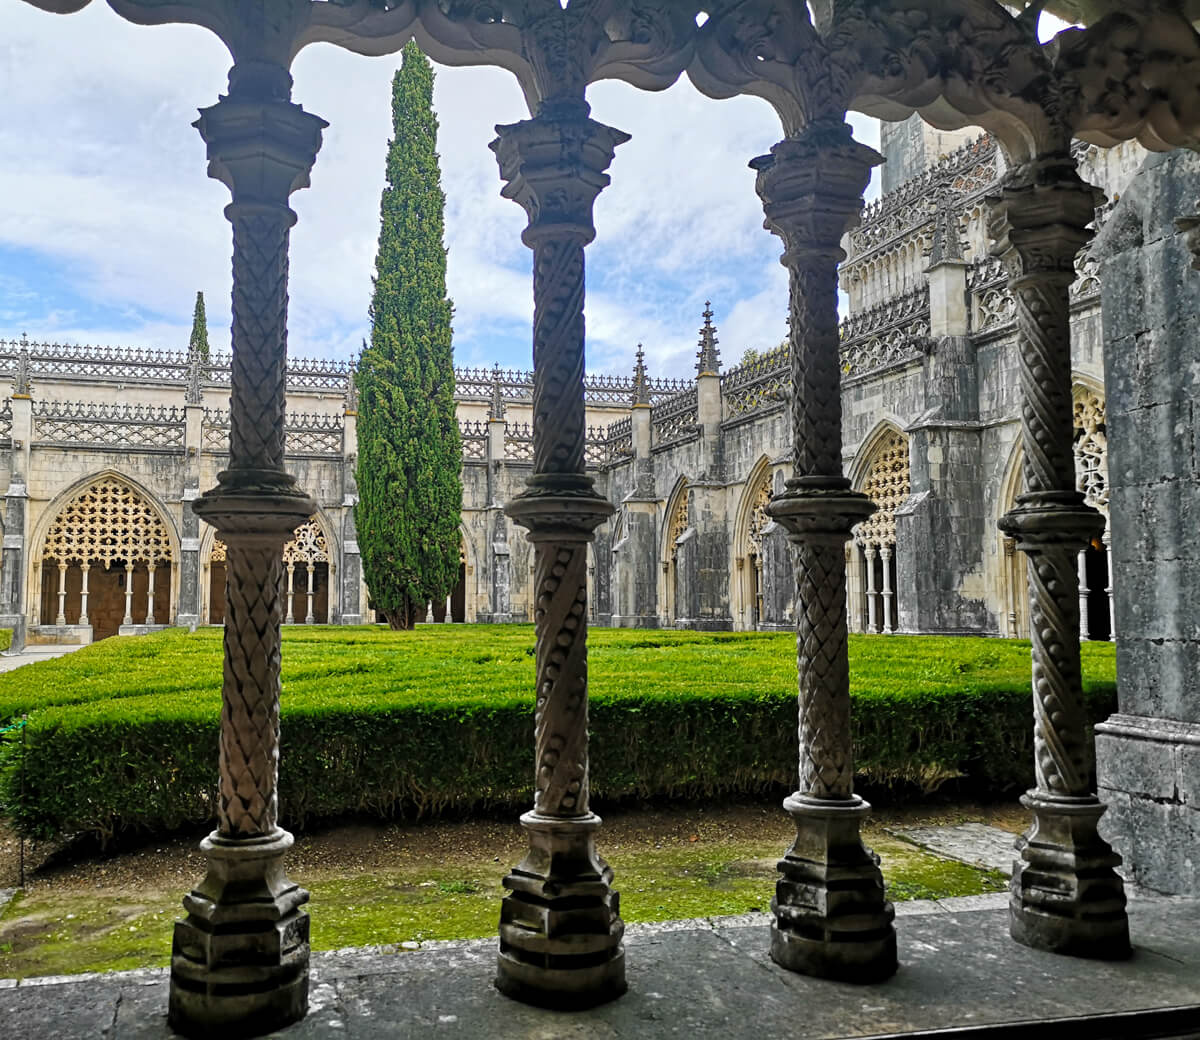 A view looking out to the gardens through the molded columns inside Batalha Monastery